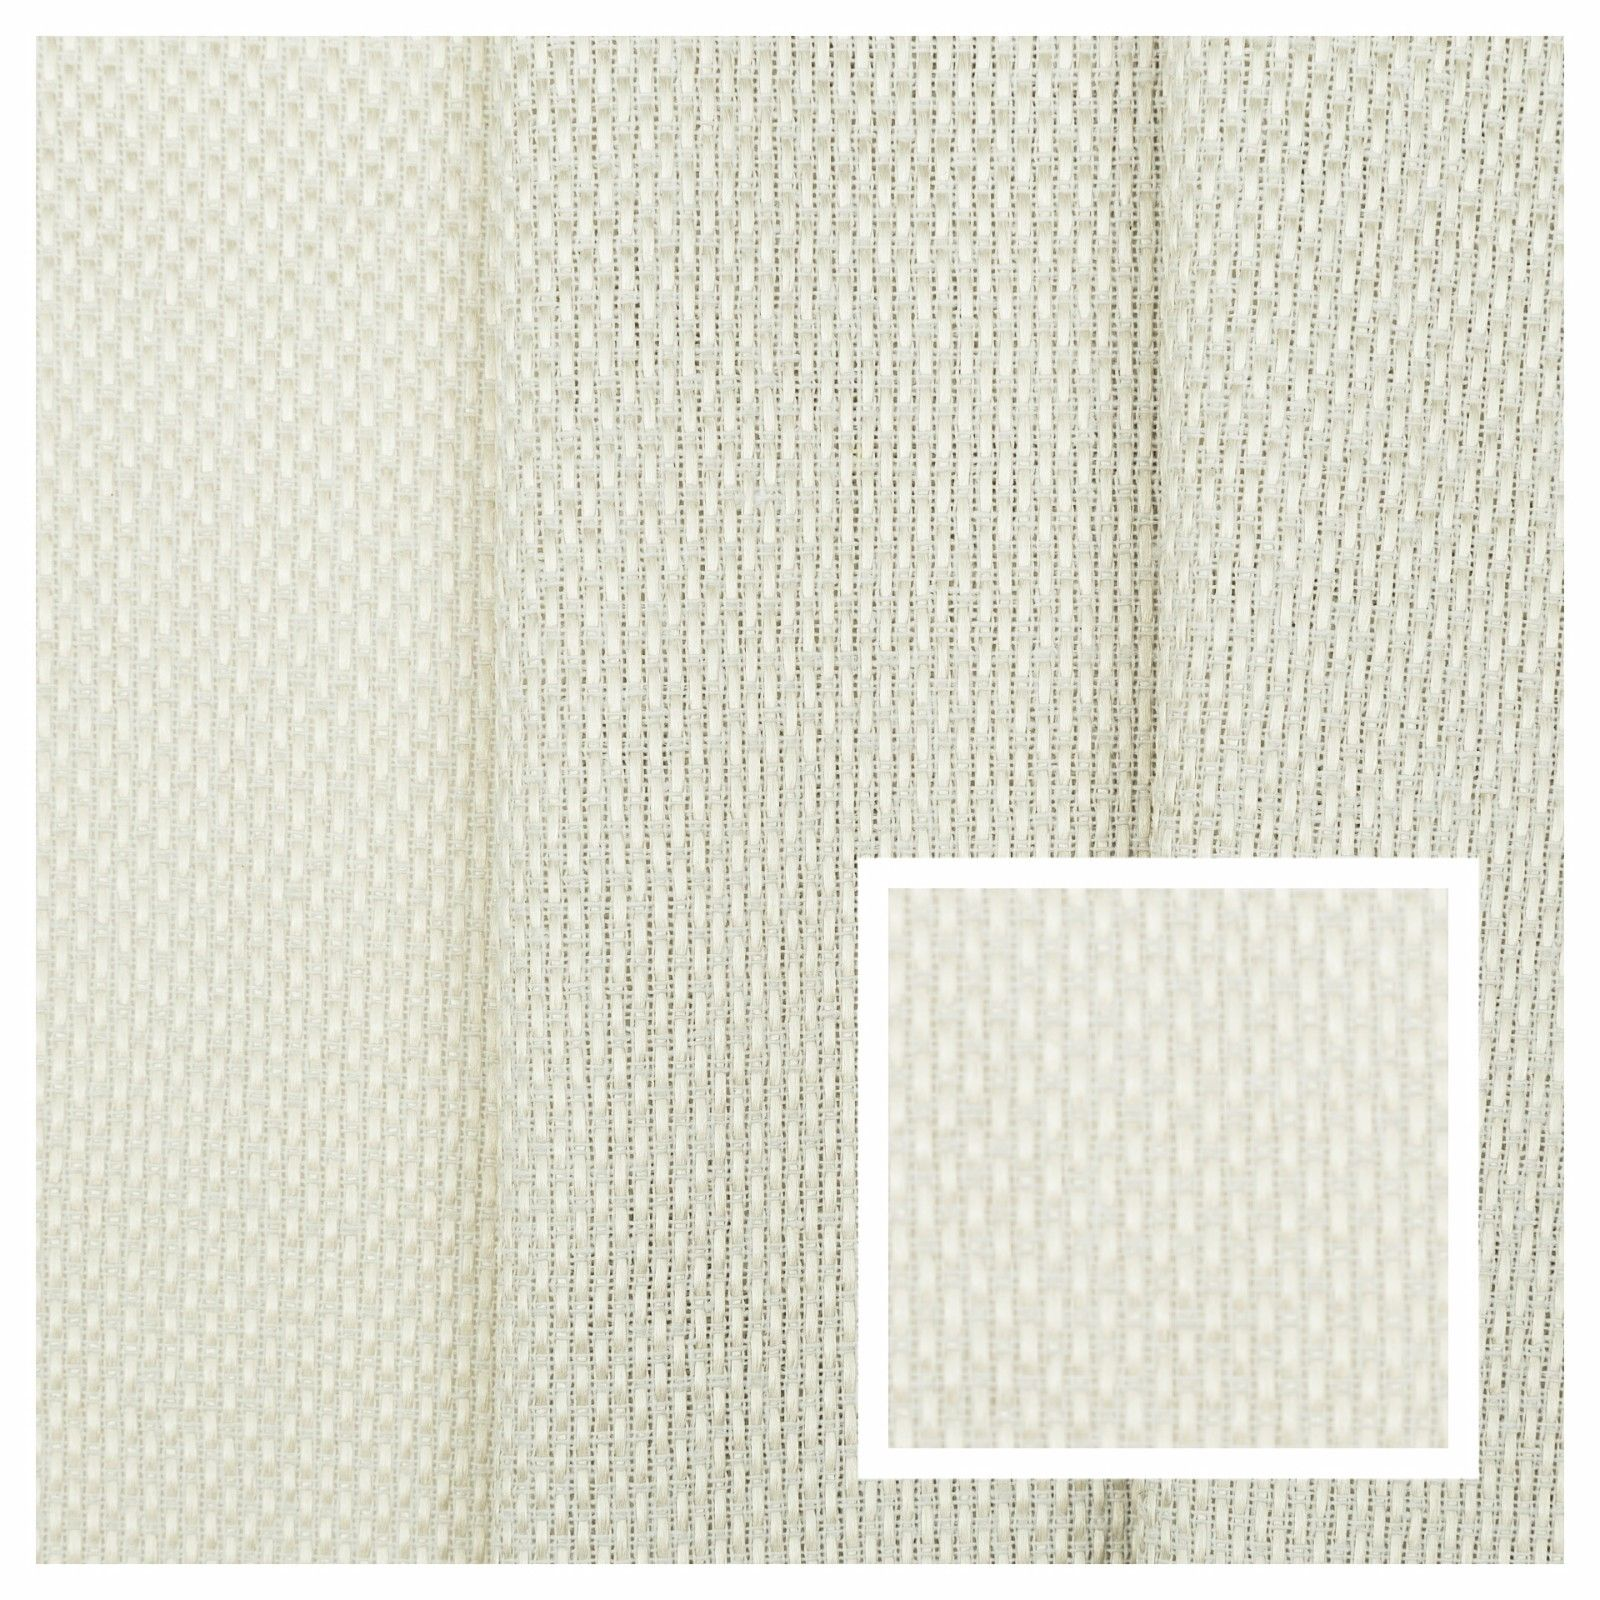 designer curtain fabric textured plain upholstery cushion material 150 cm wide